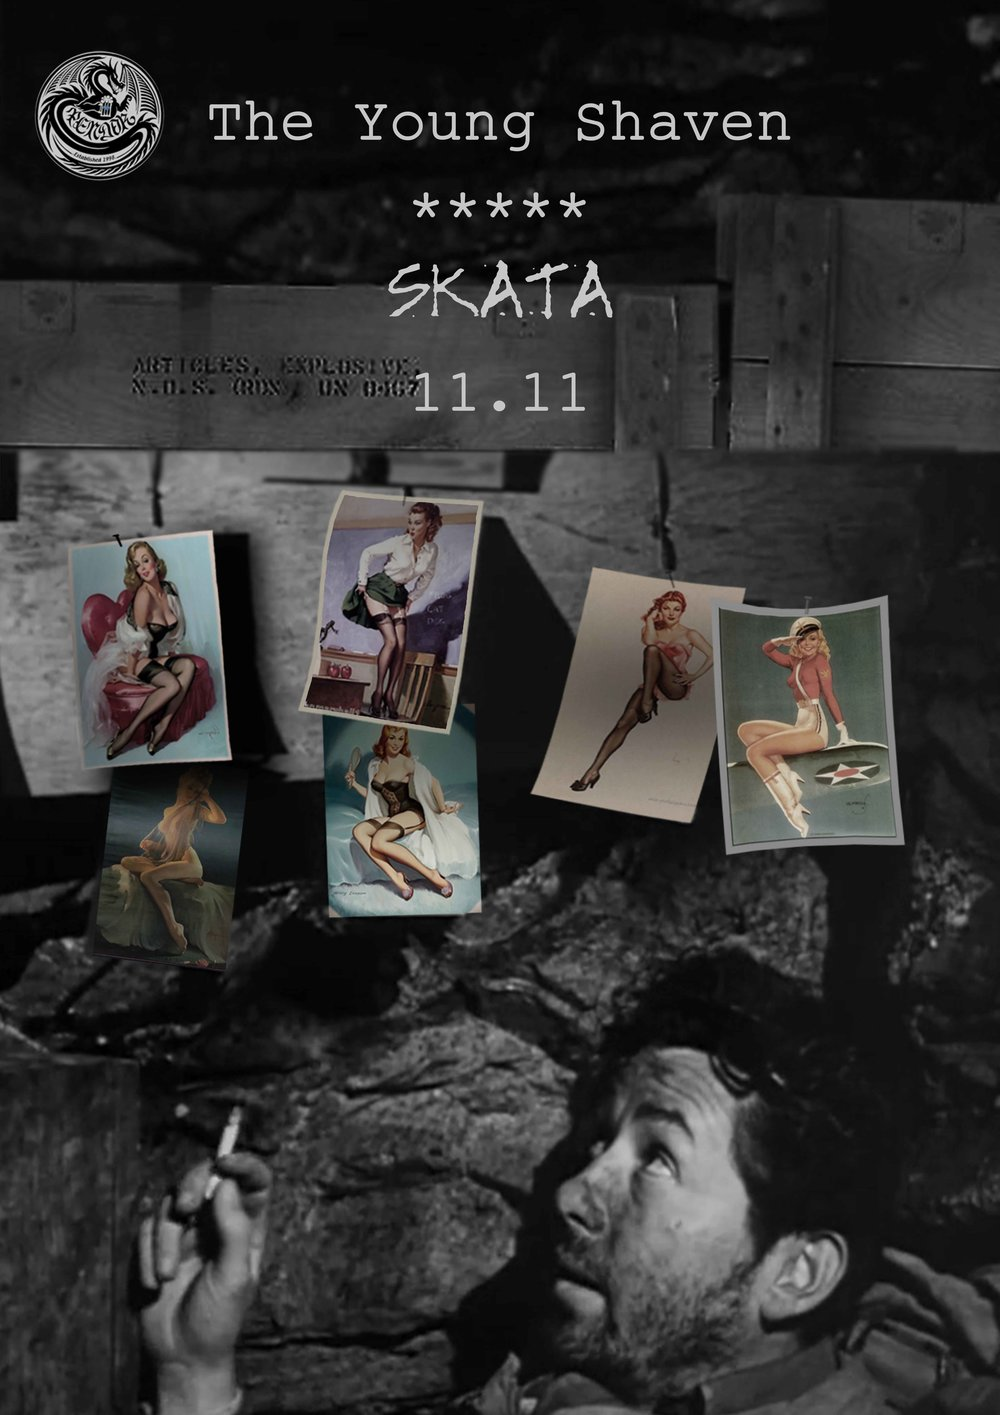 The Young Shaven and Skata poster